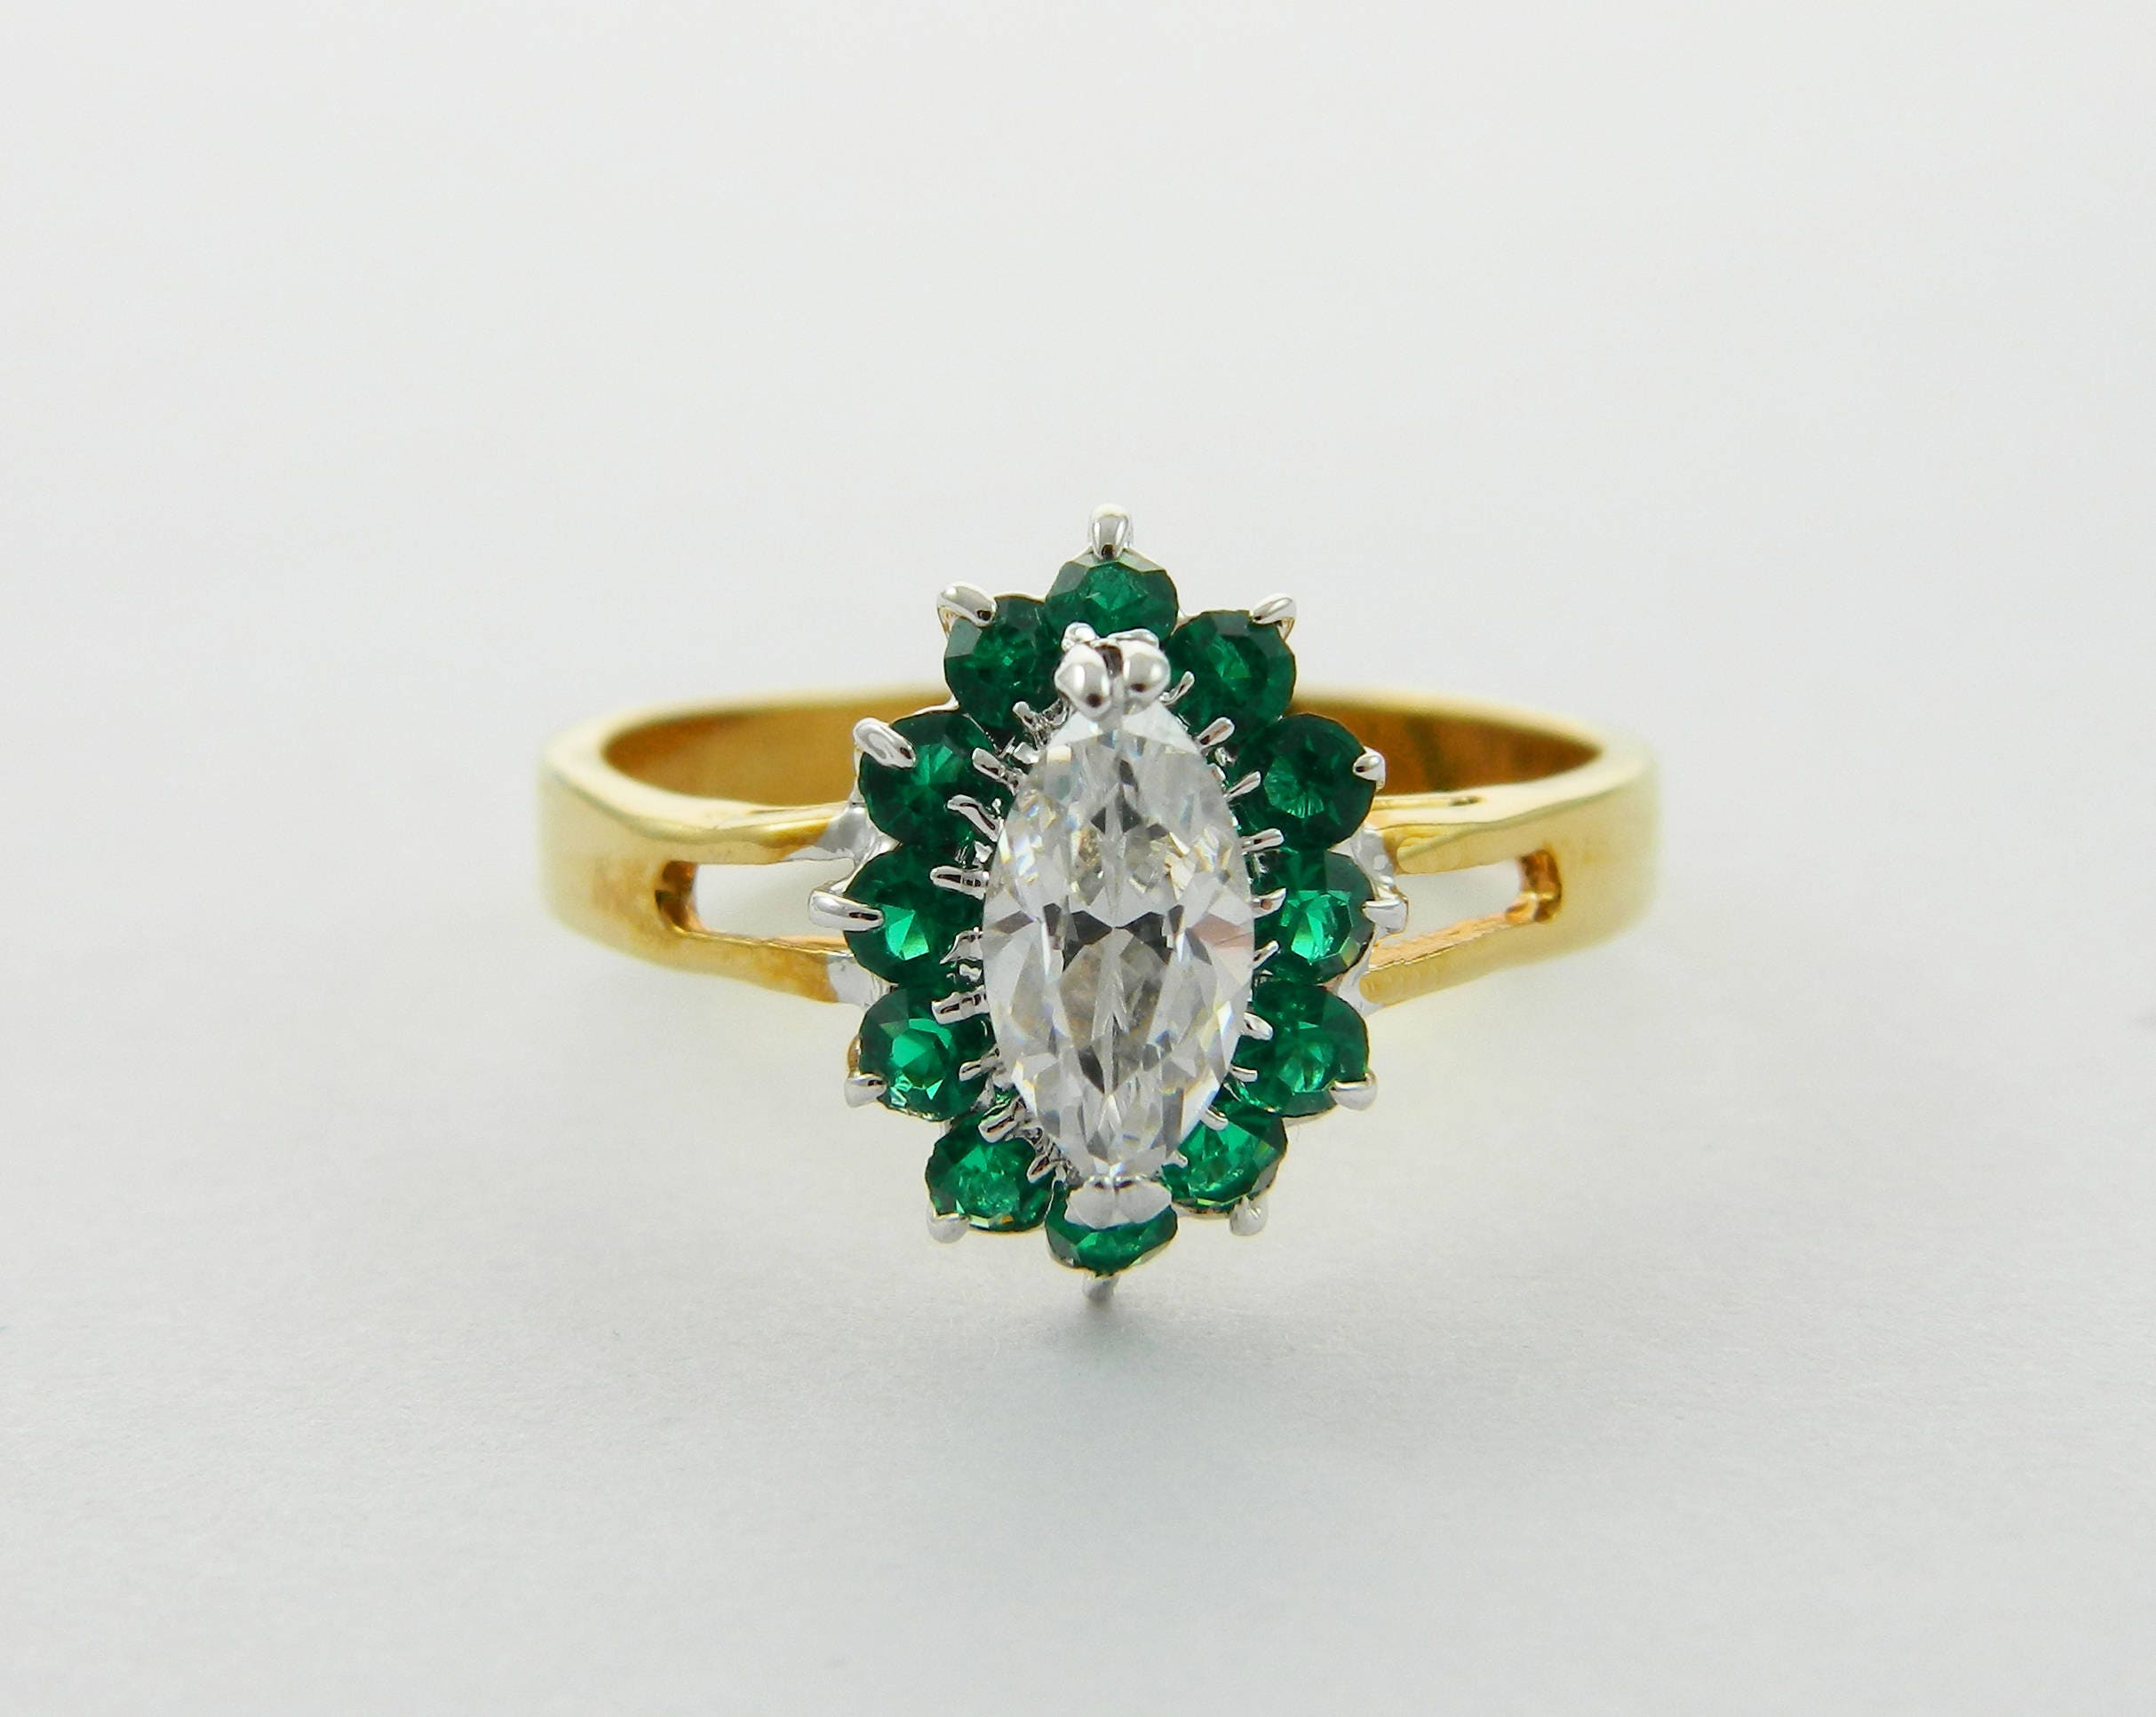 14Kt Gold Simulated Emerald /& Diamond Marquise Ring